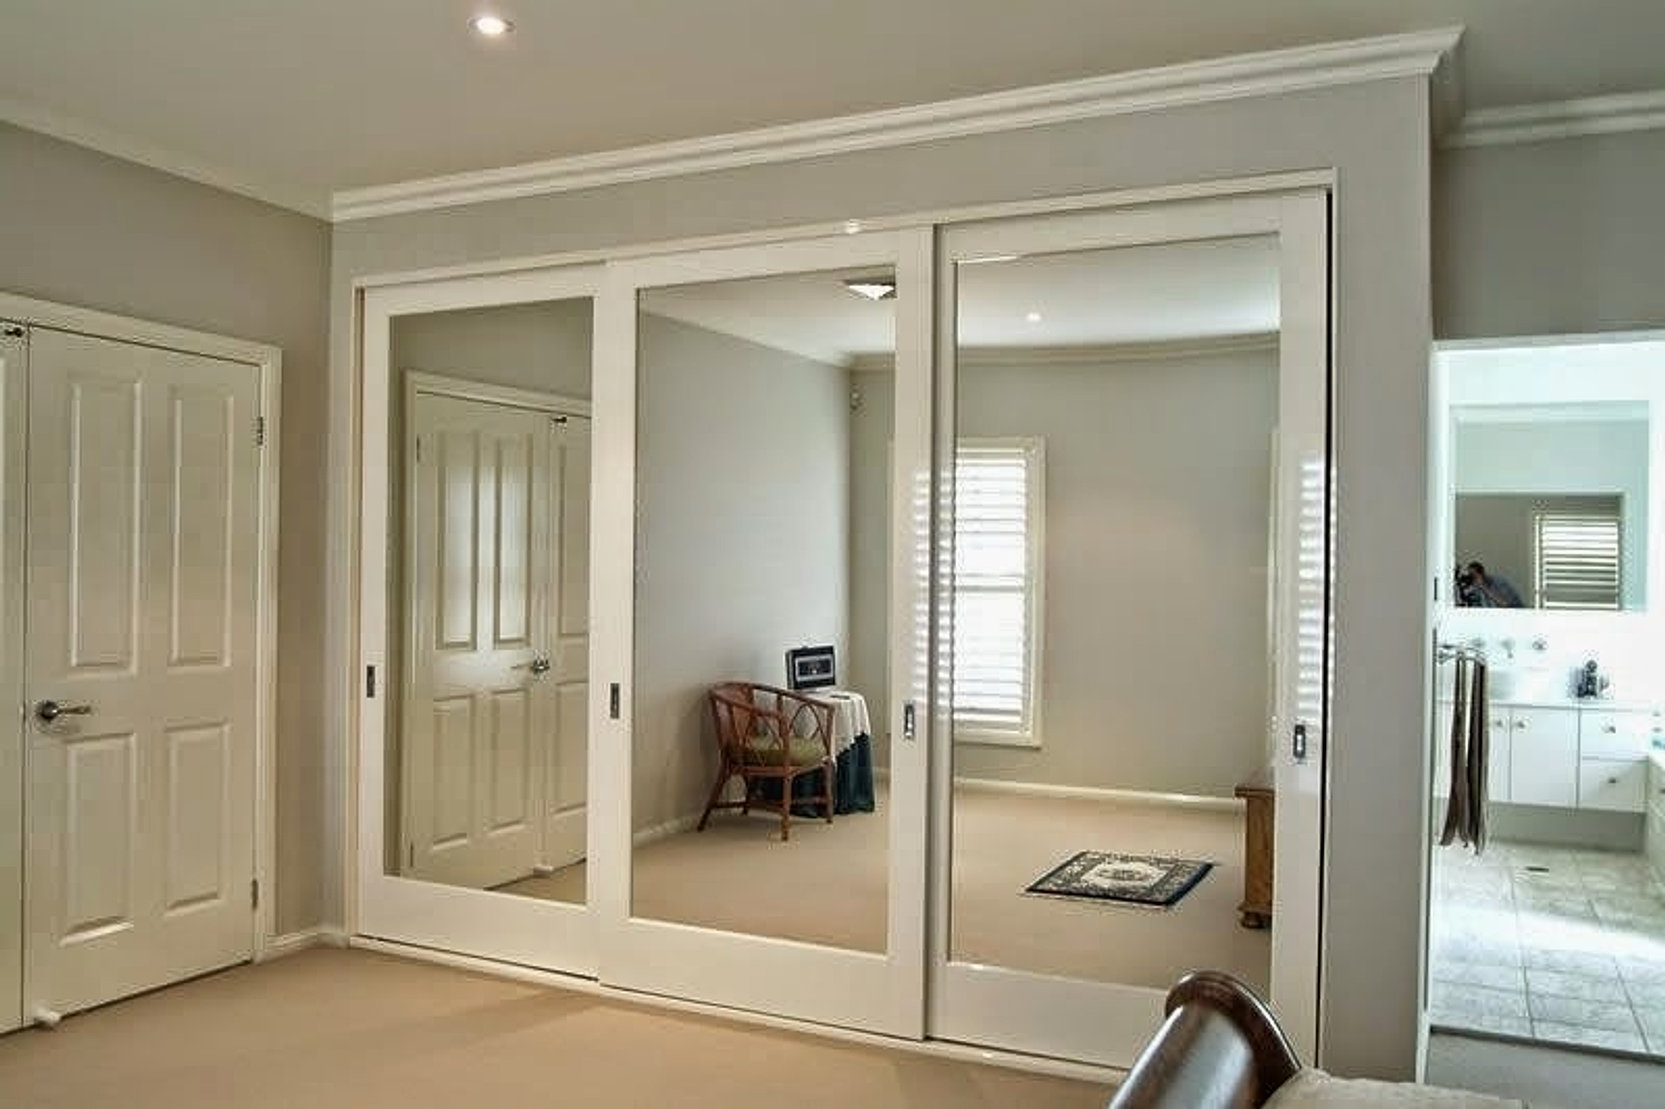 The London Craftsman Home - Fitted wardrobes